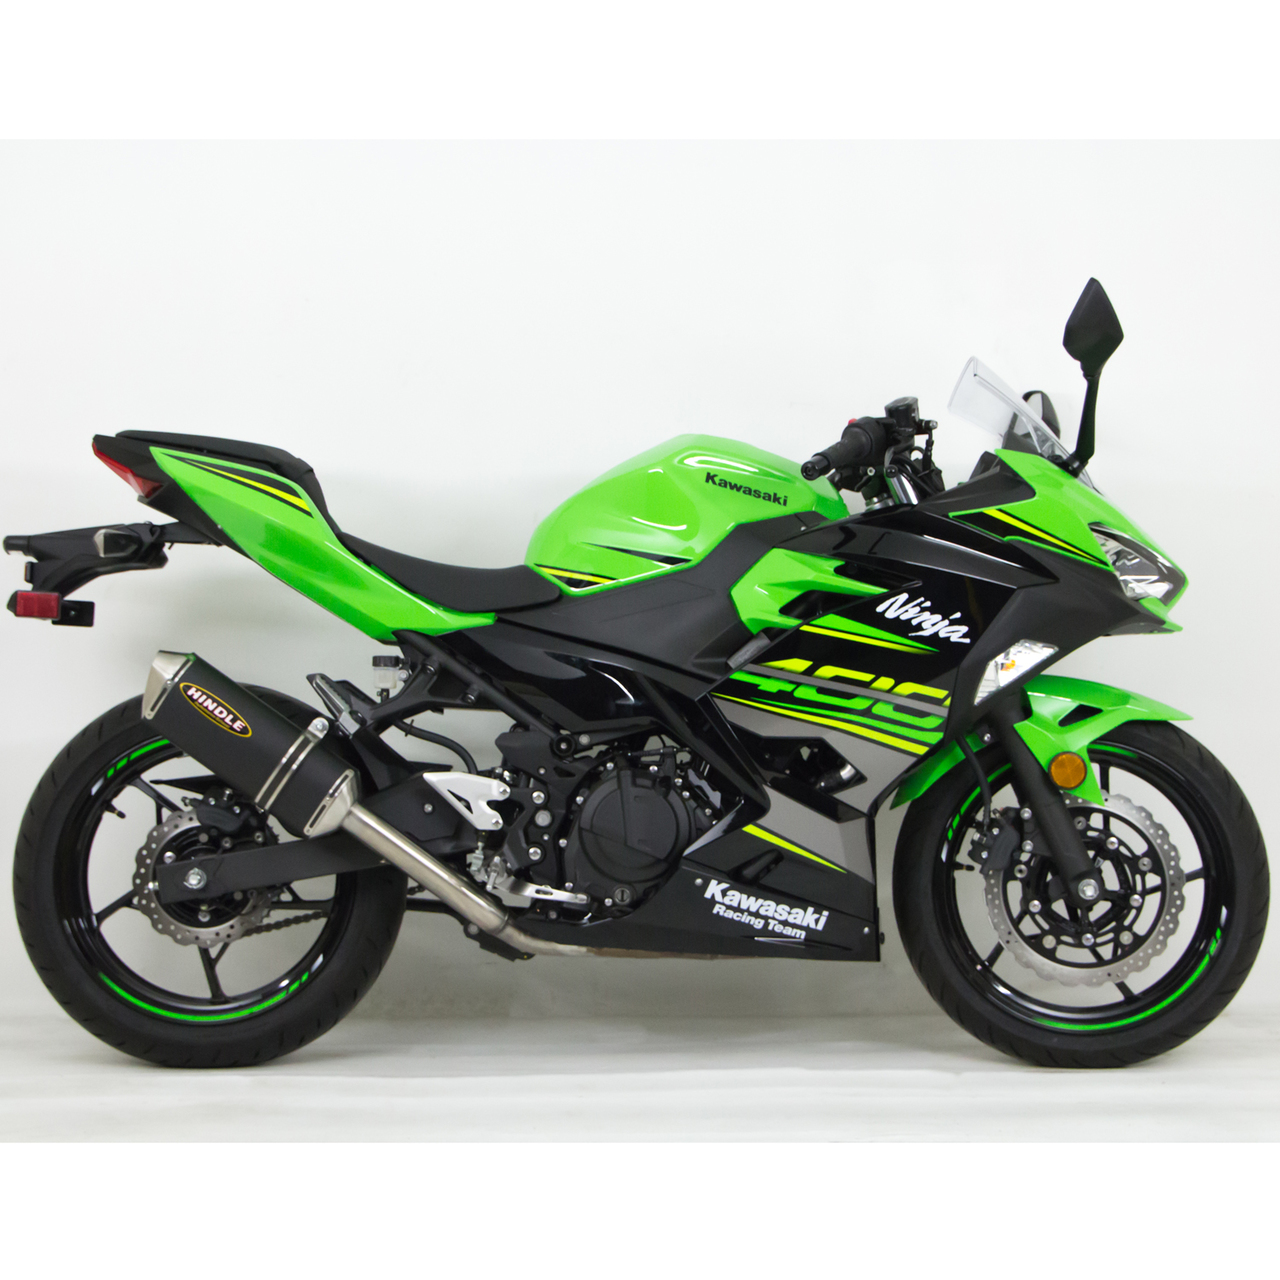 hindle kawasaki ninja 400 2018 evo full exhaust system. Black Bedroom Furniture Sets. Home Design Ideas